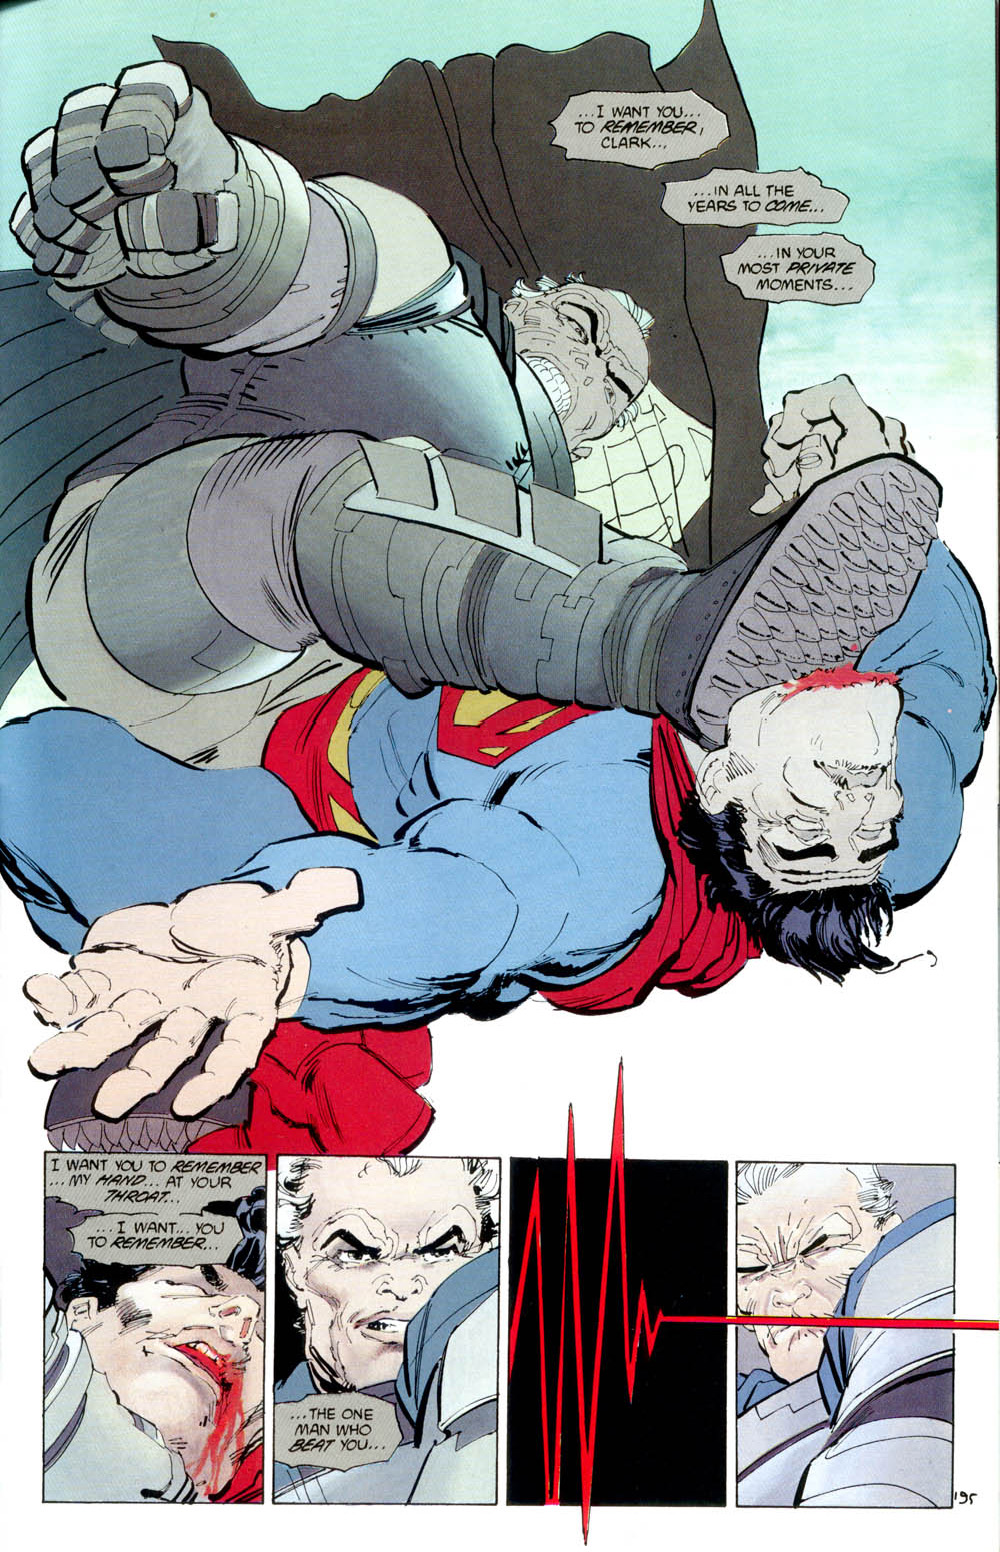 Batman VS Superman (The Dark Knight Returns) | Comicnewbies